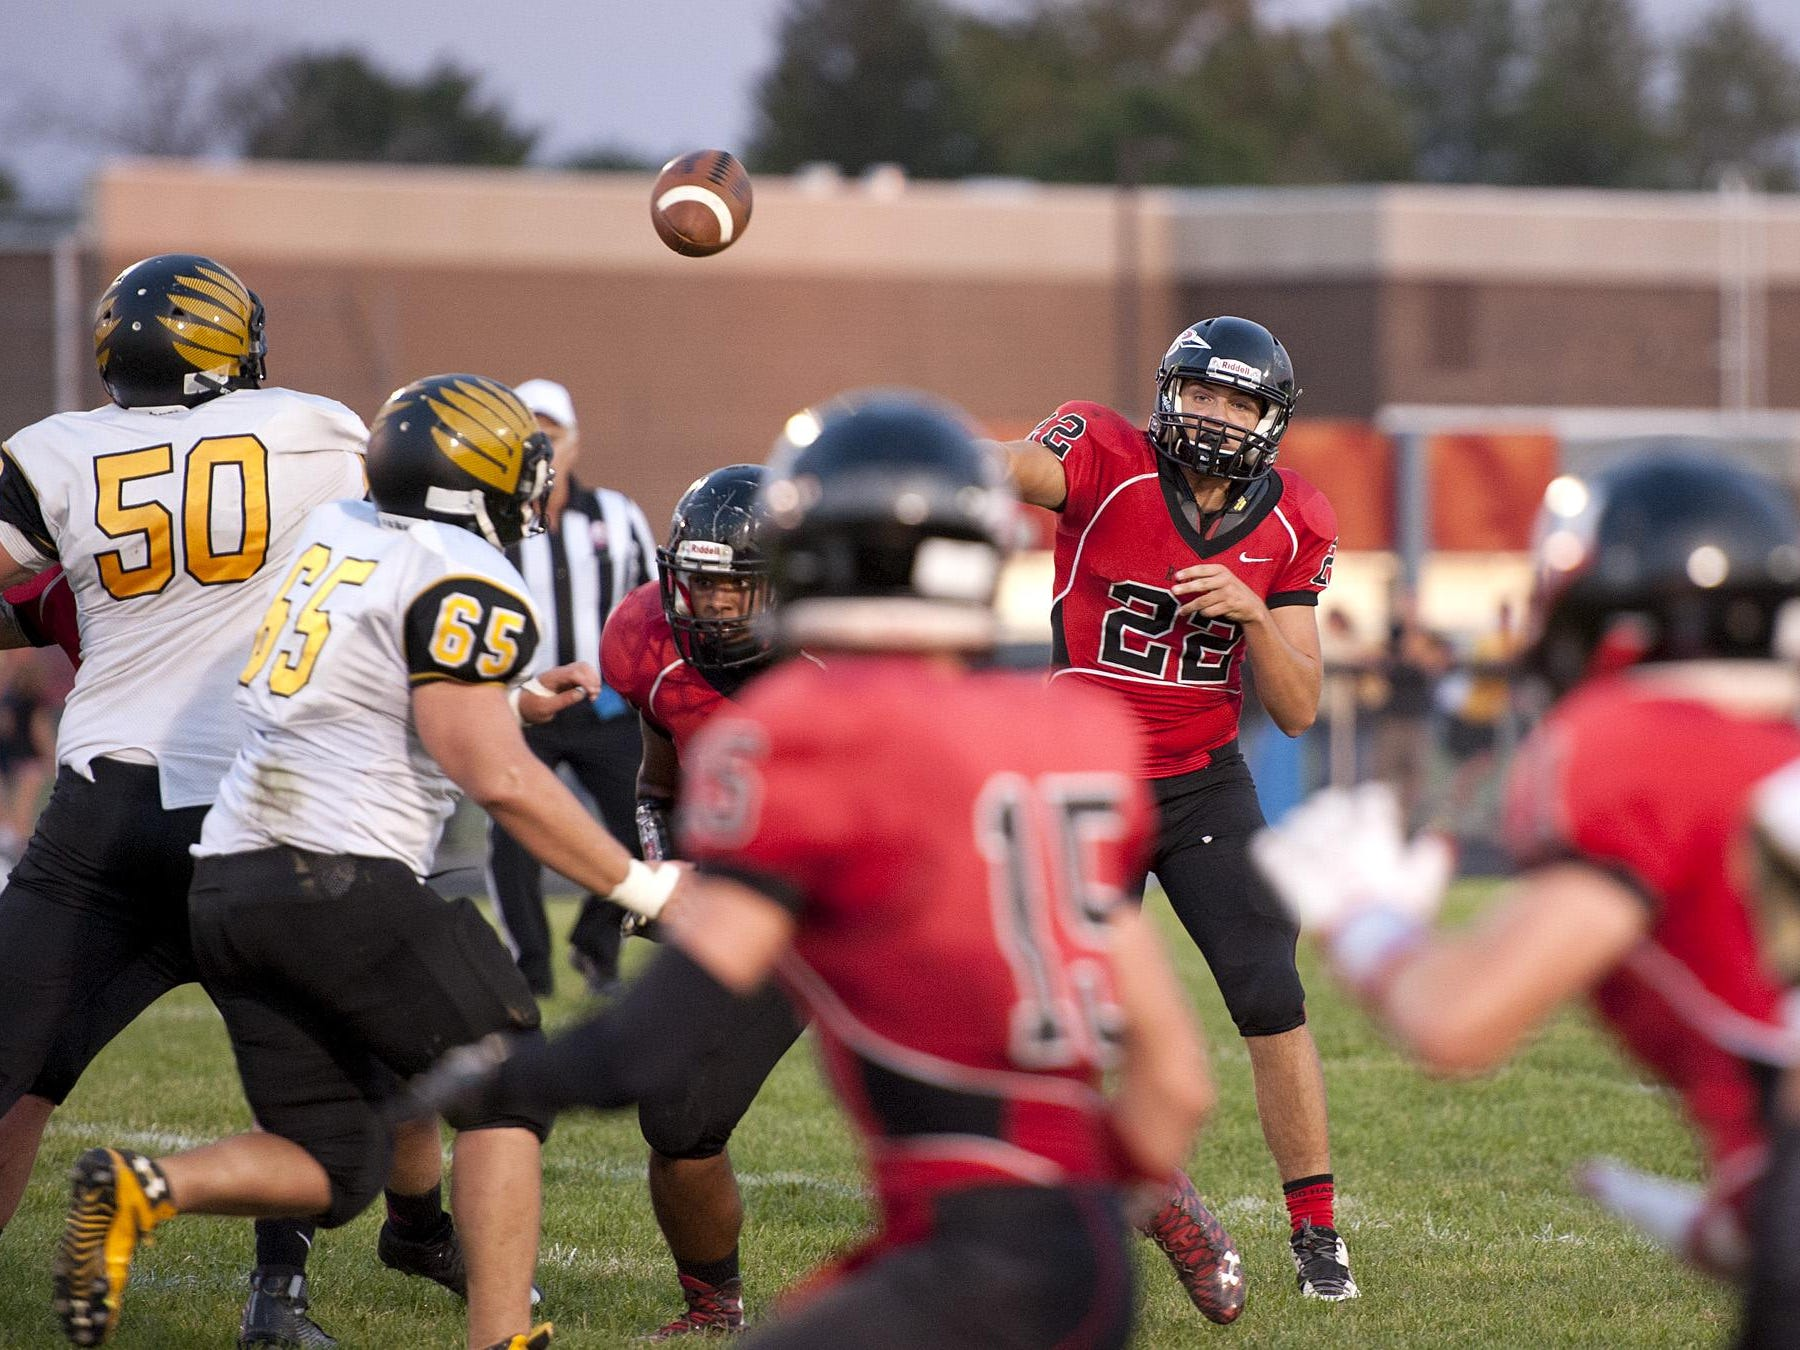 Bucyrus quarterback, Gavin Lewis, throws the ball in the first quarter.